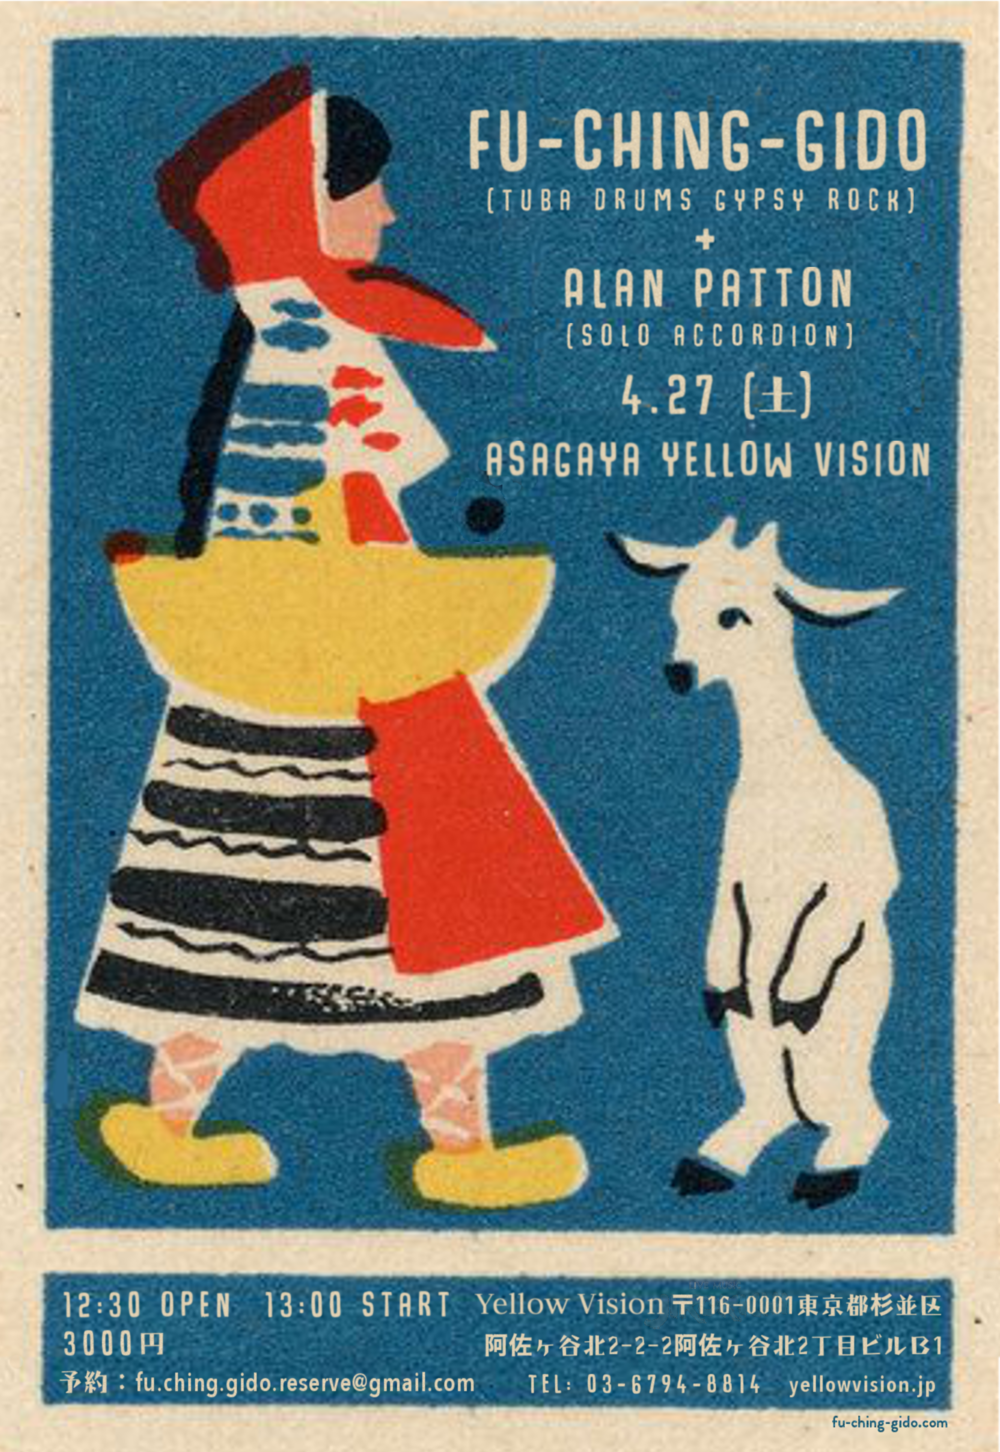 4.27 Yellow Vision postcard flyer.png